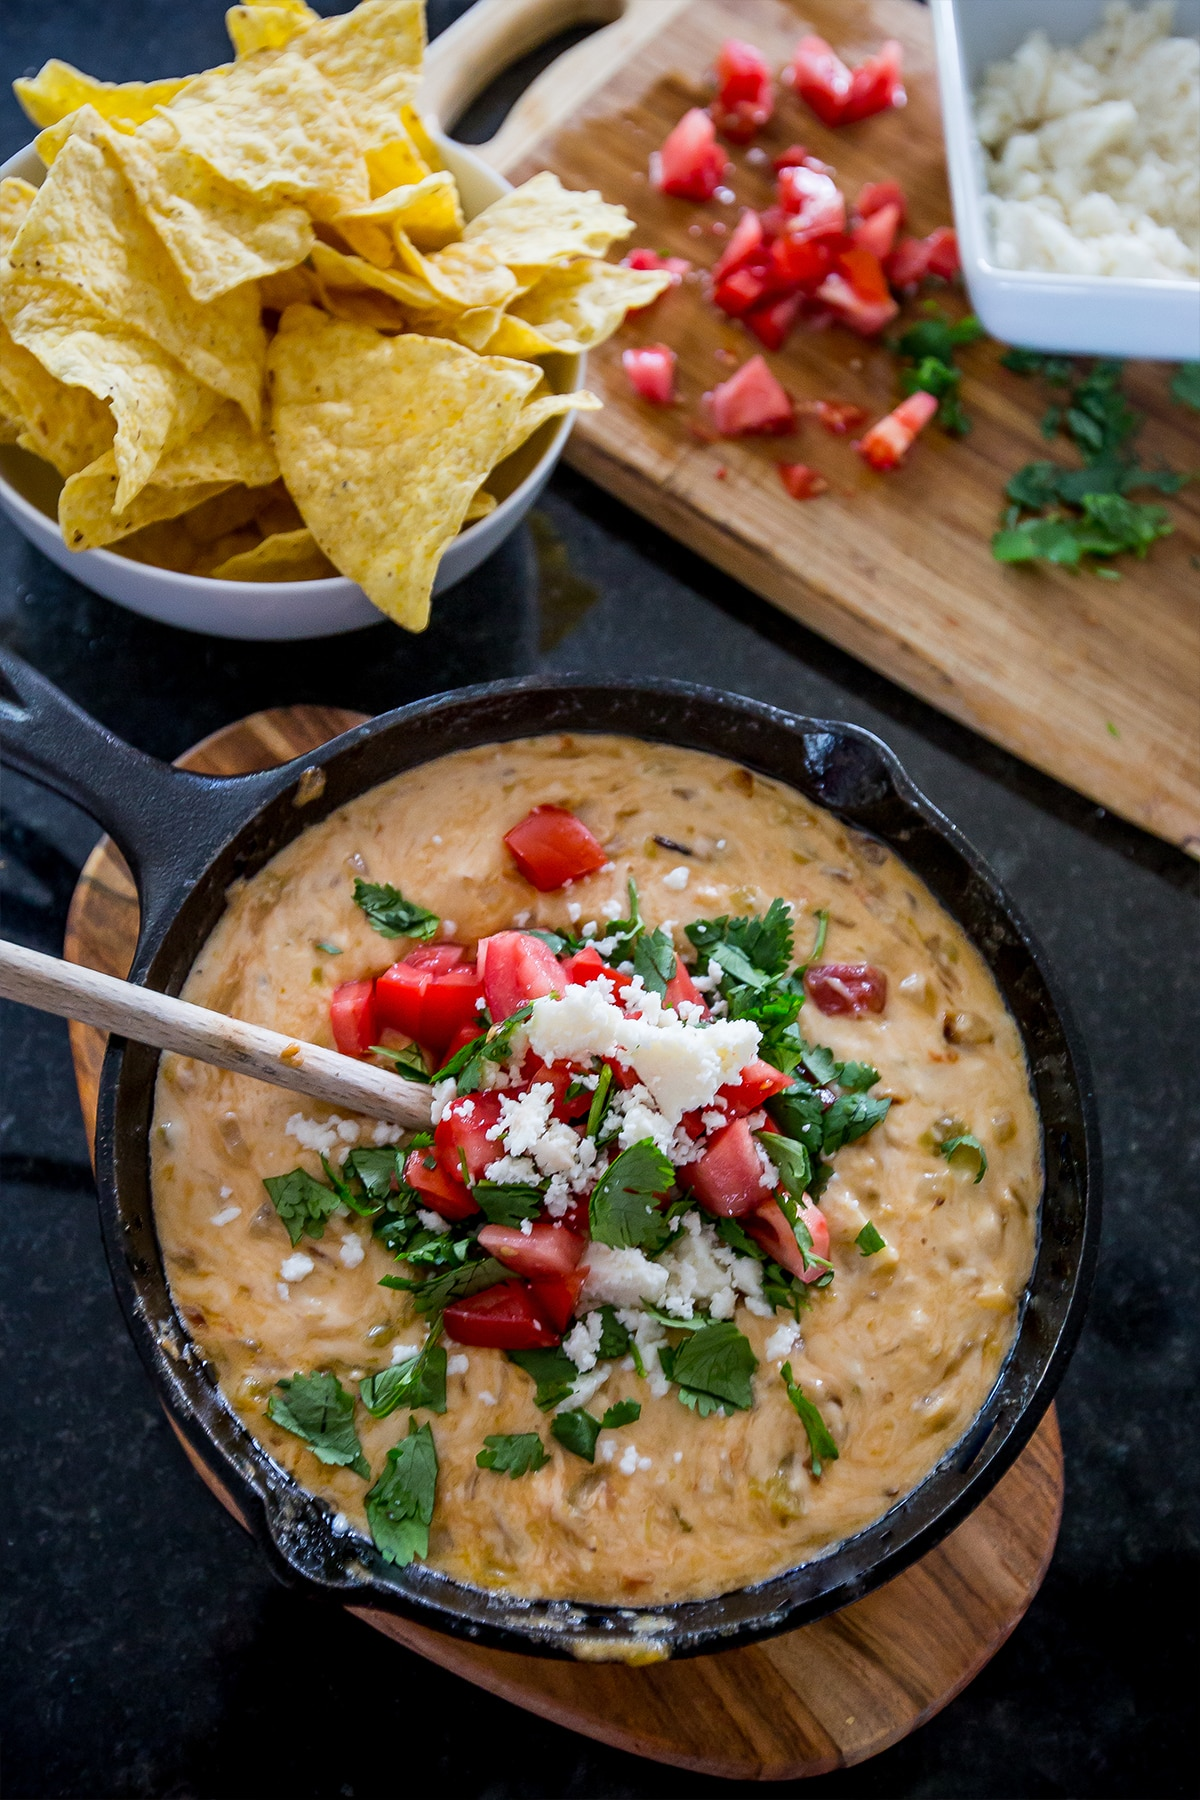 Creamy green chili white queso